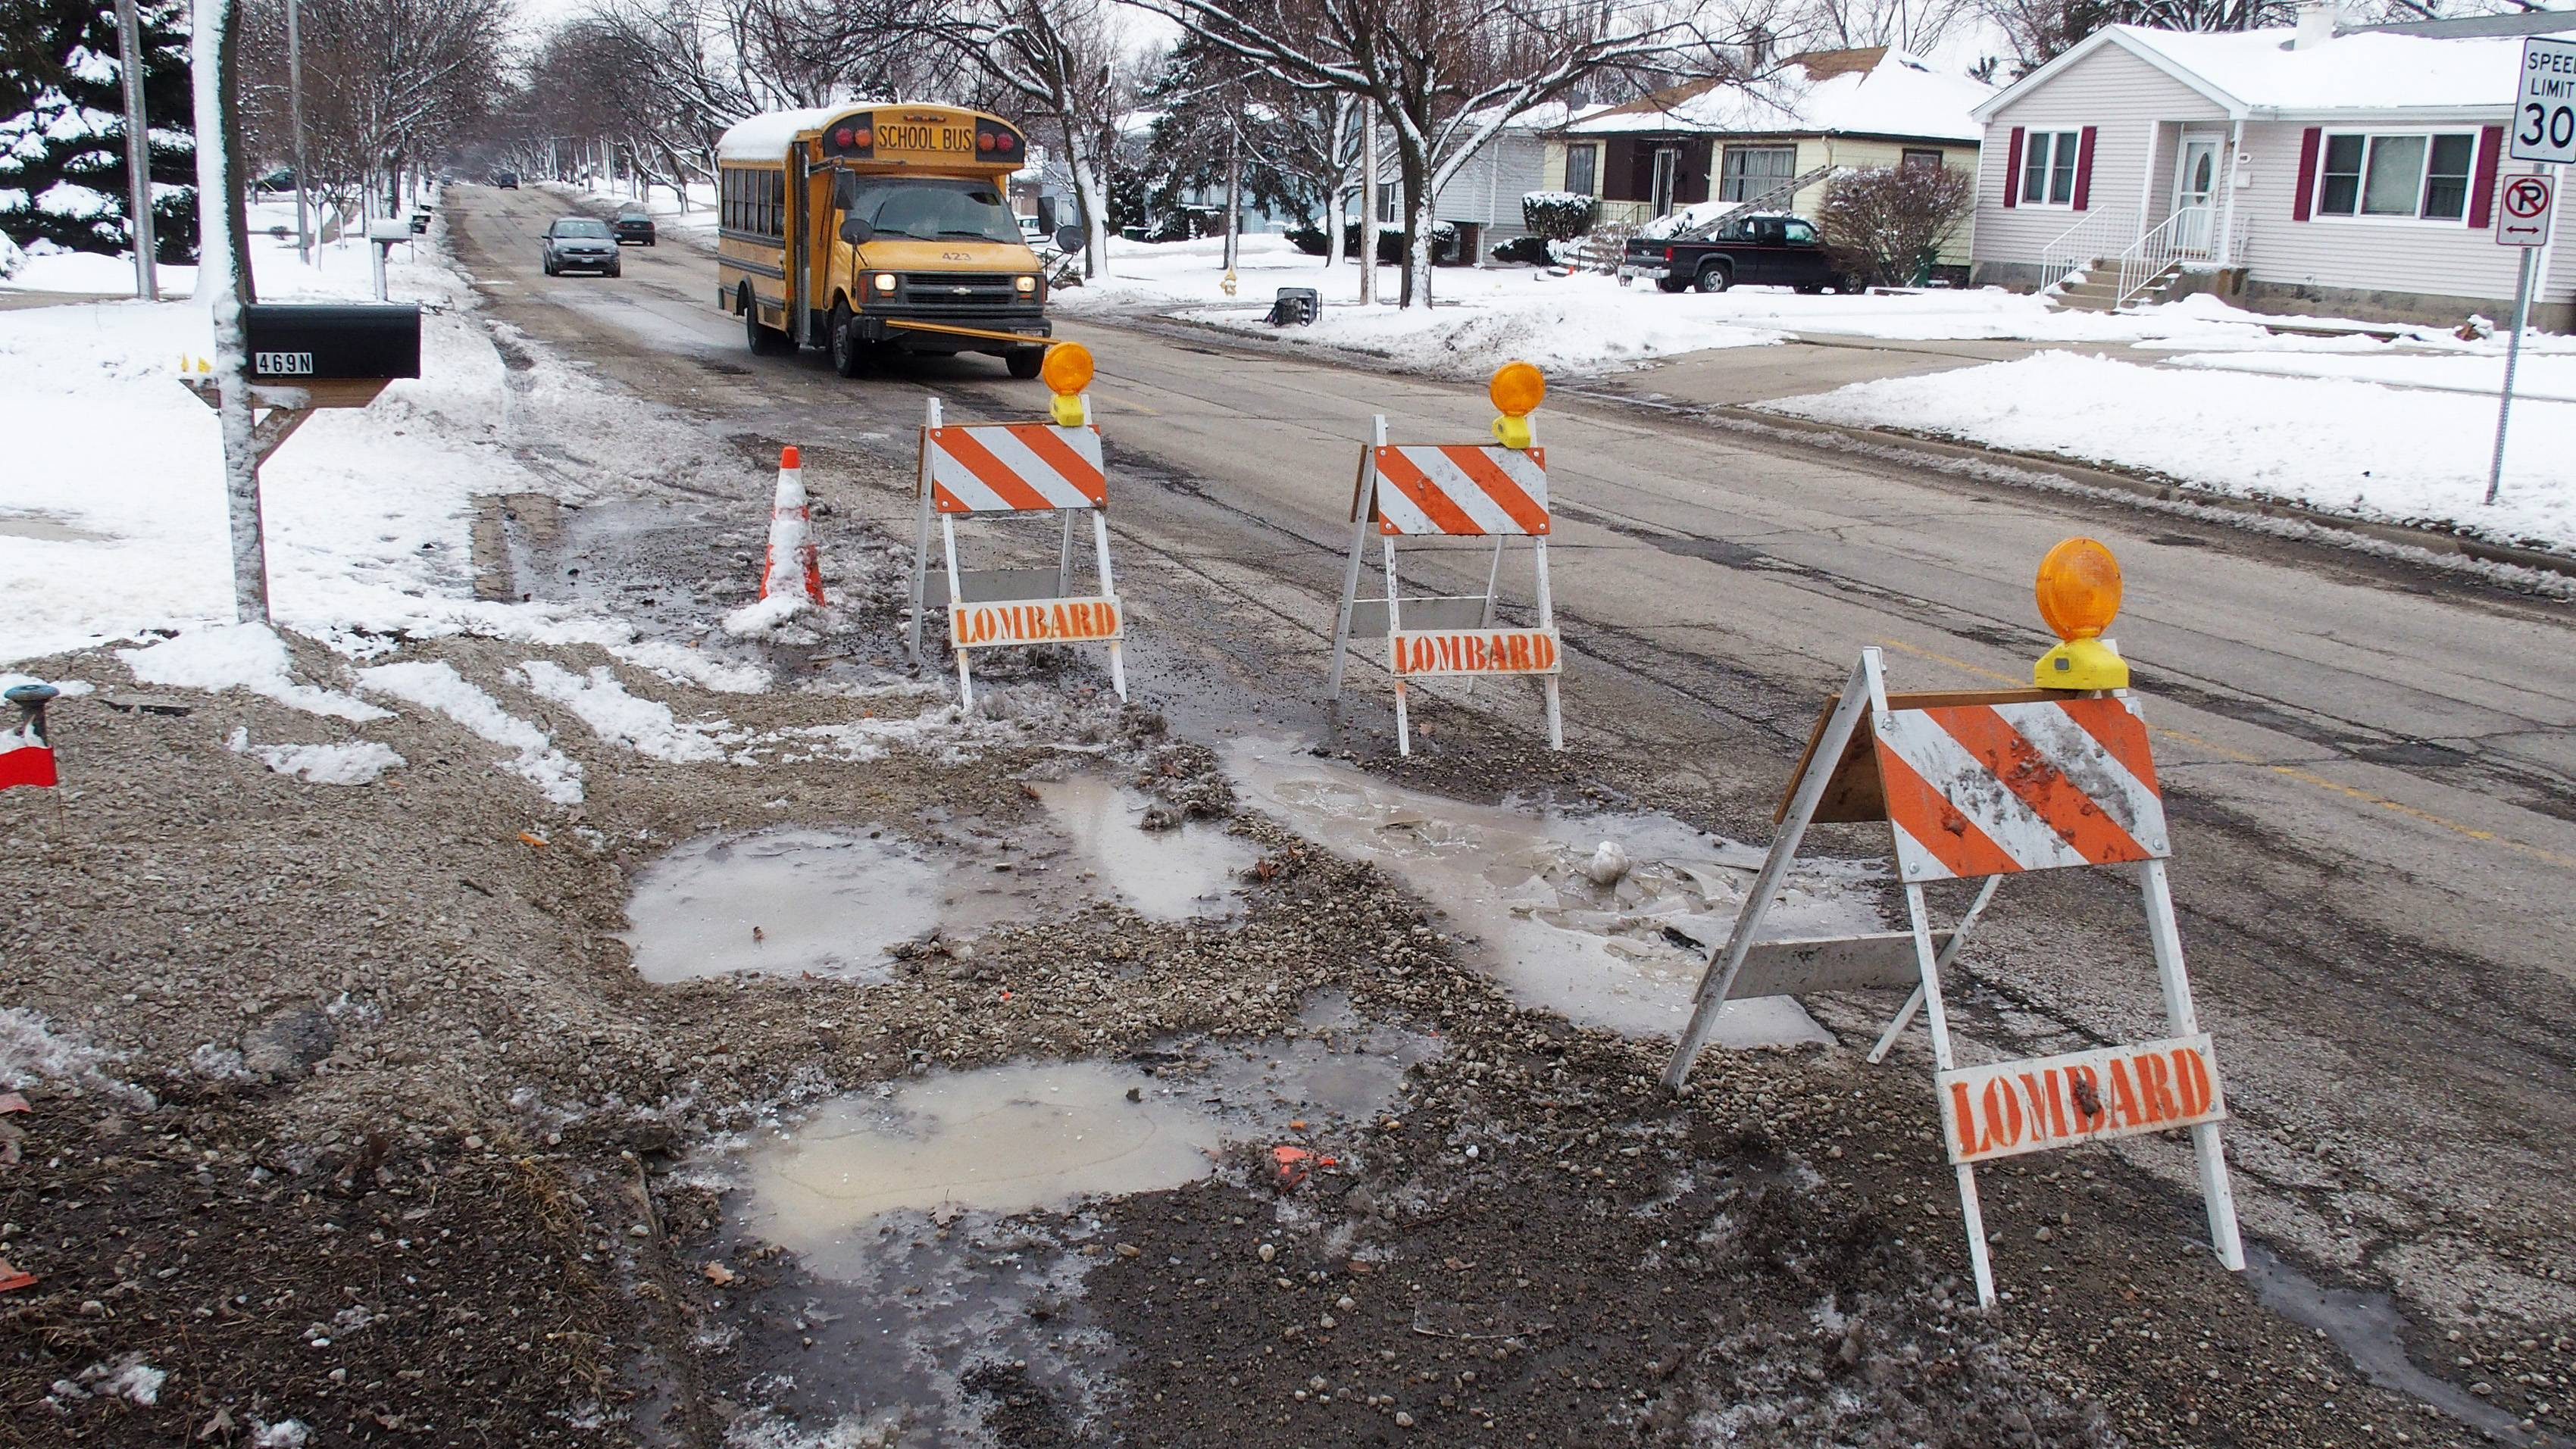 Lombard's public works department has received a significant number of phone calls this winter from residents concerned about the potholes on Grace Street, including these near Berkshire Avenue.